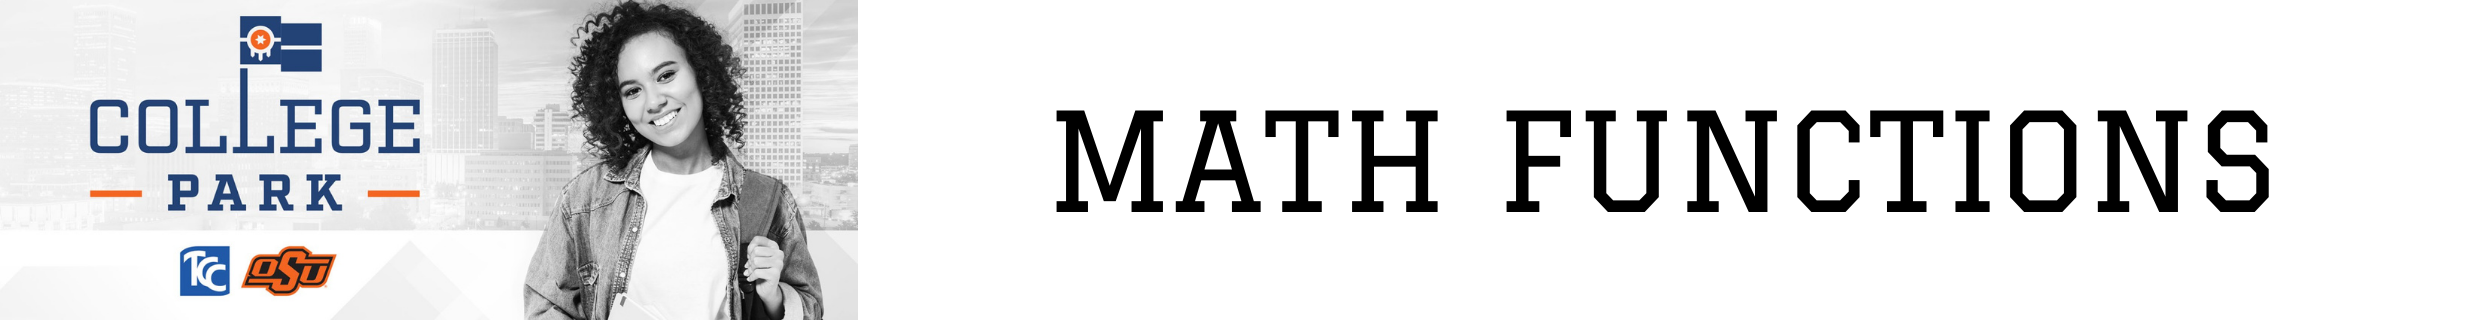 College Park Math Functions